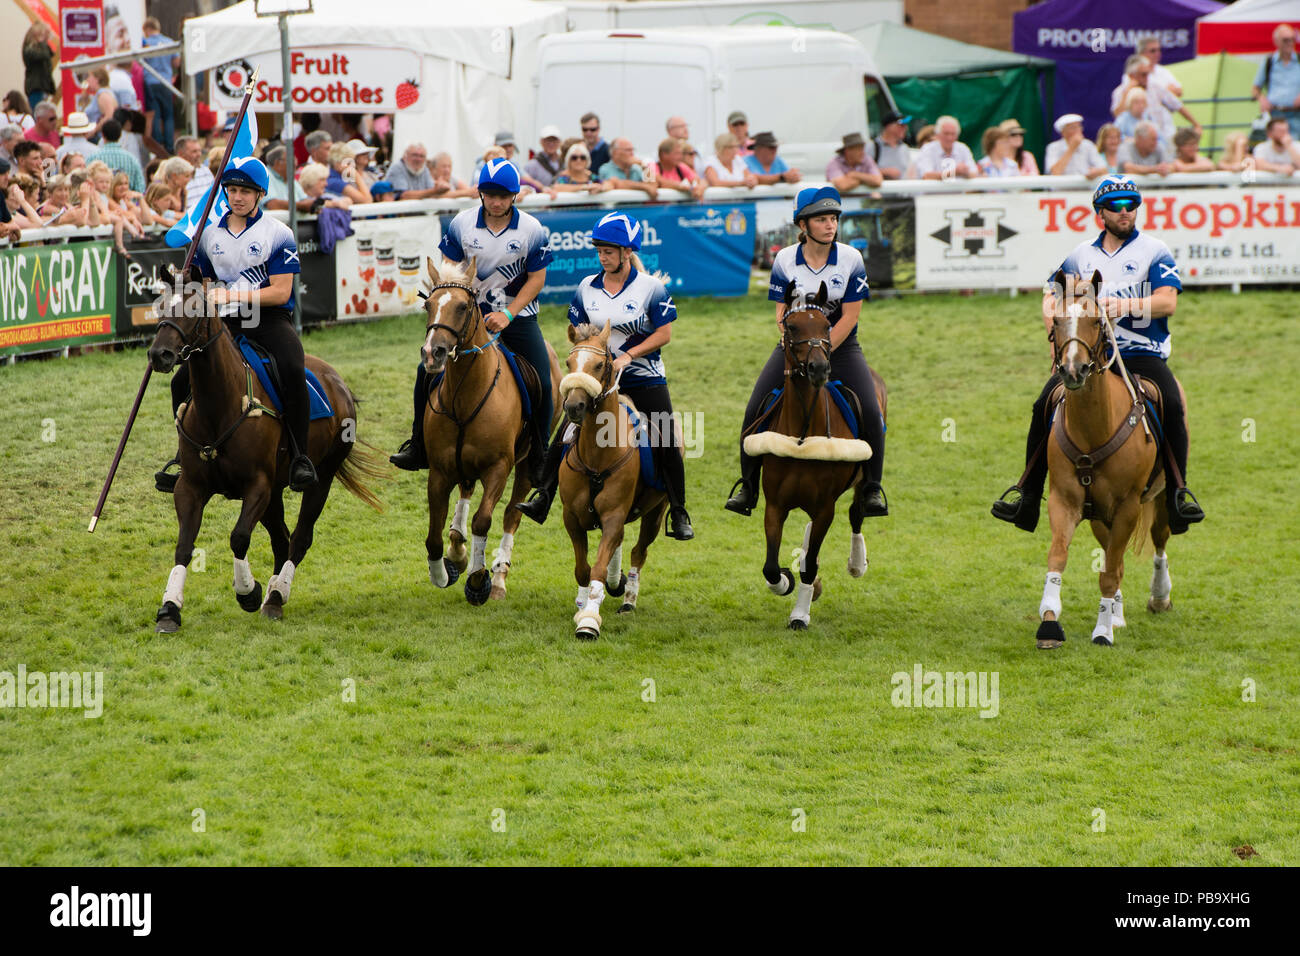 Horse riding display at The Royal Welsh Show, the UK's leading agriculture and farming event, held annually at the purpose built show ground at Builth Wells, Powys, Wales - Stock Image